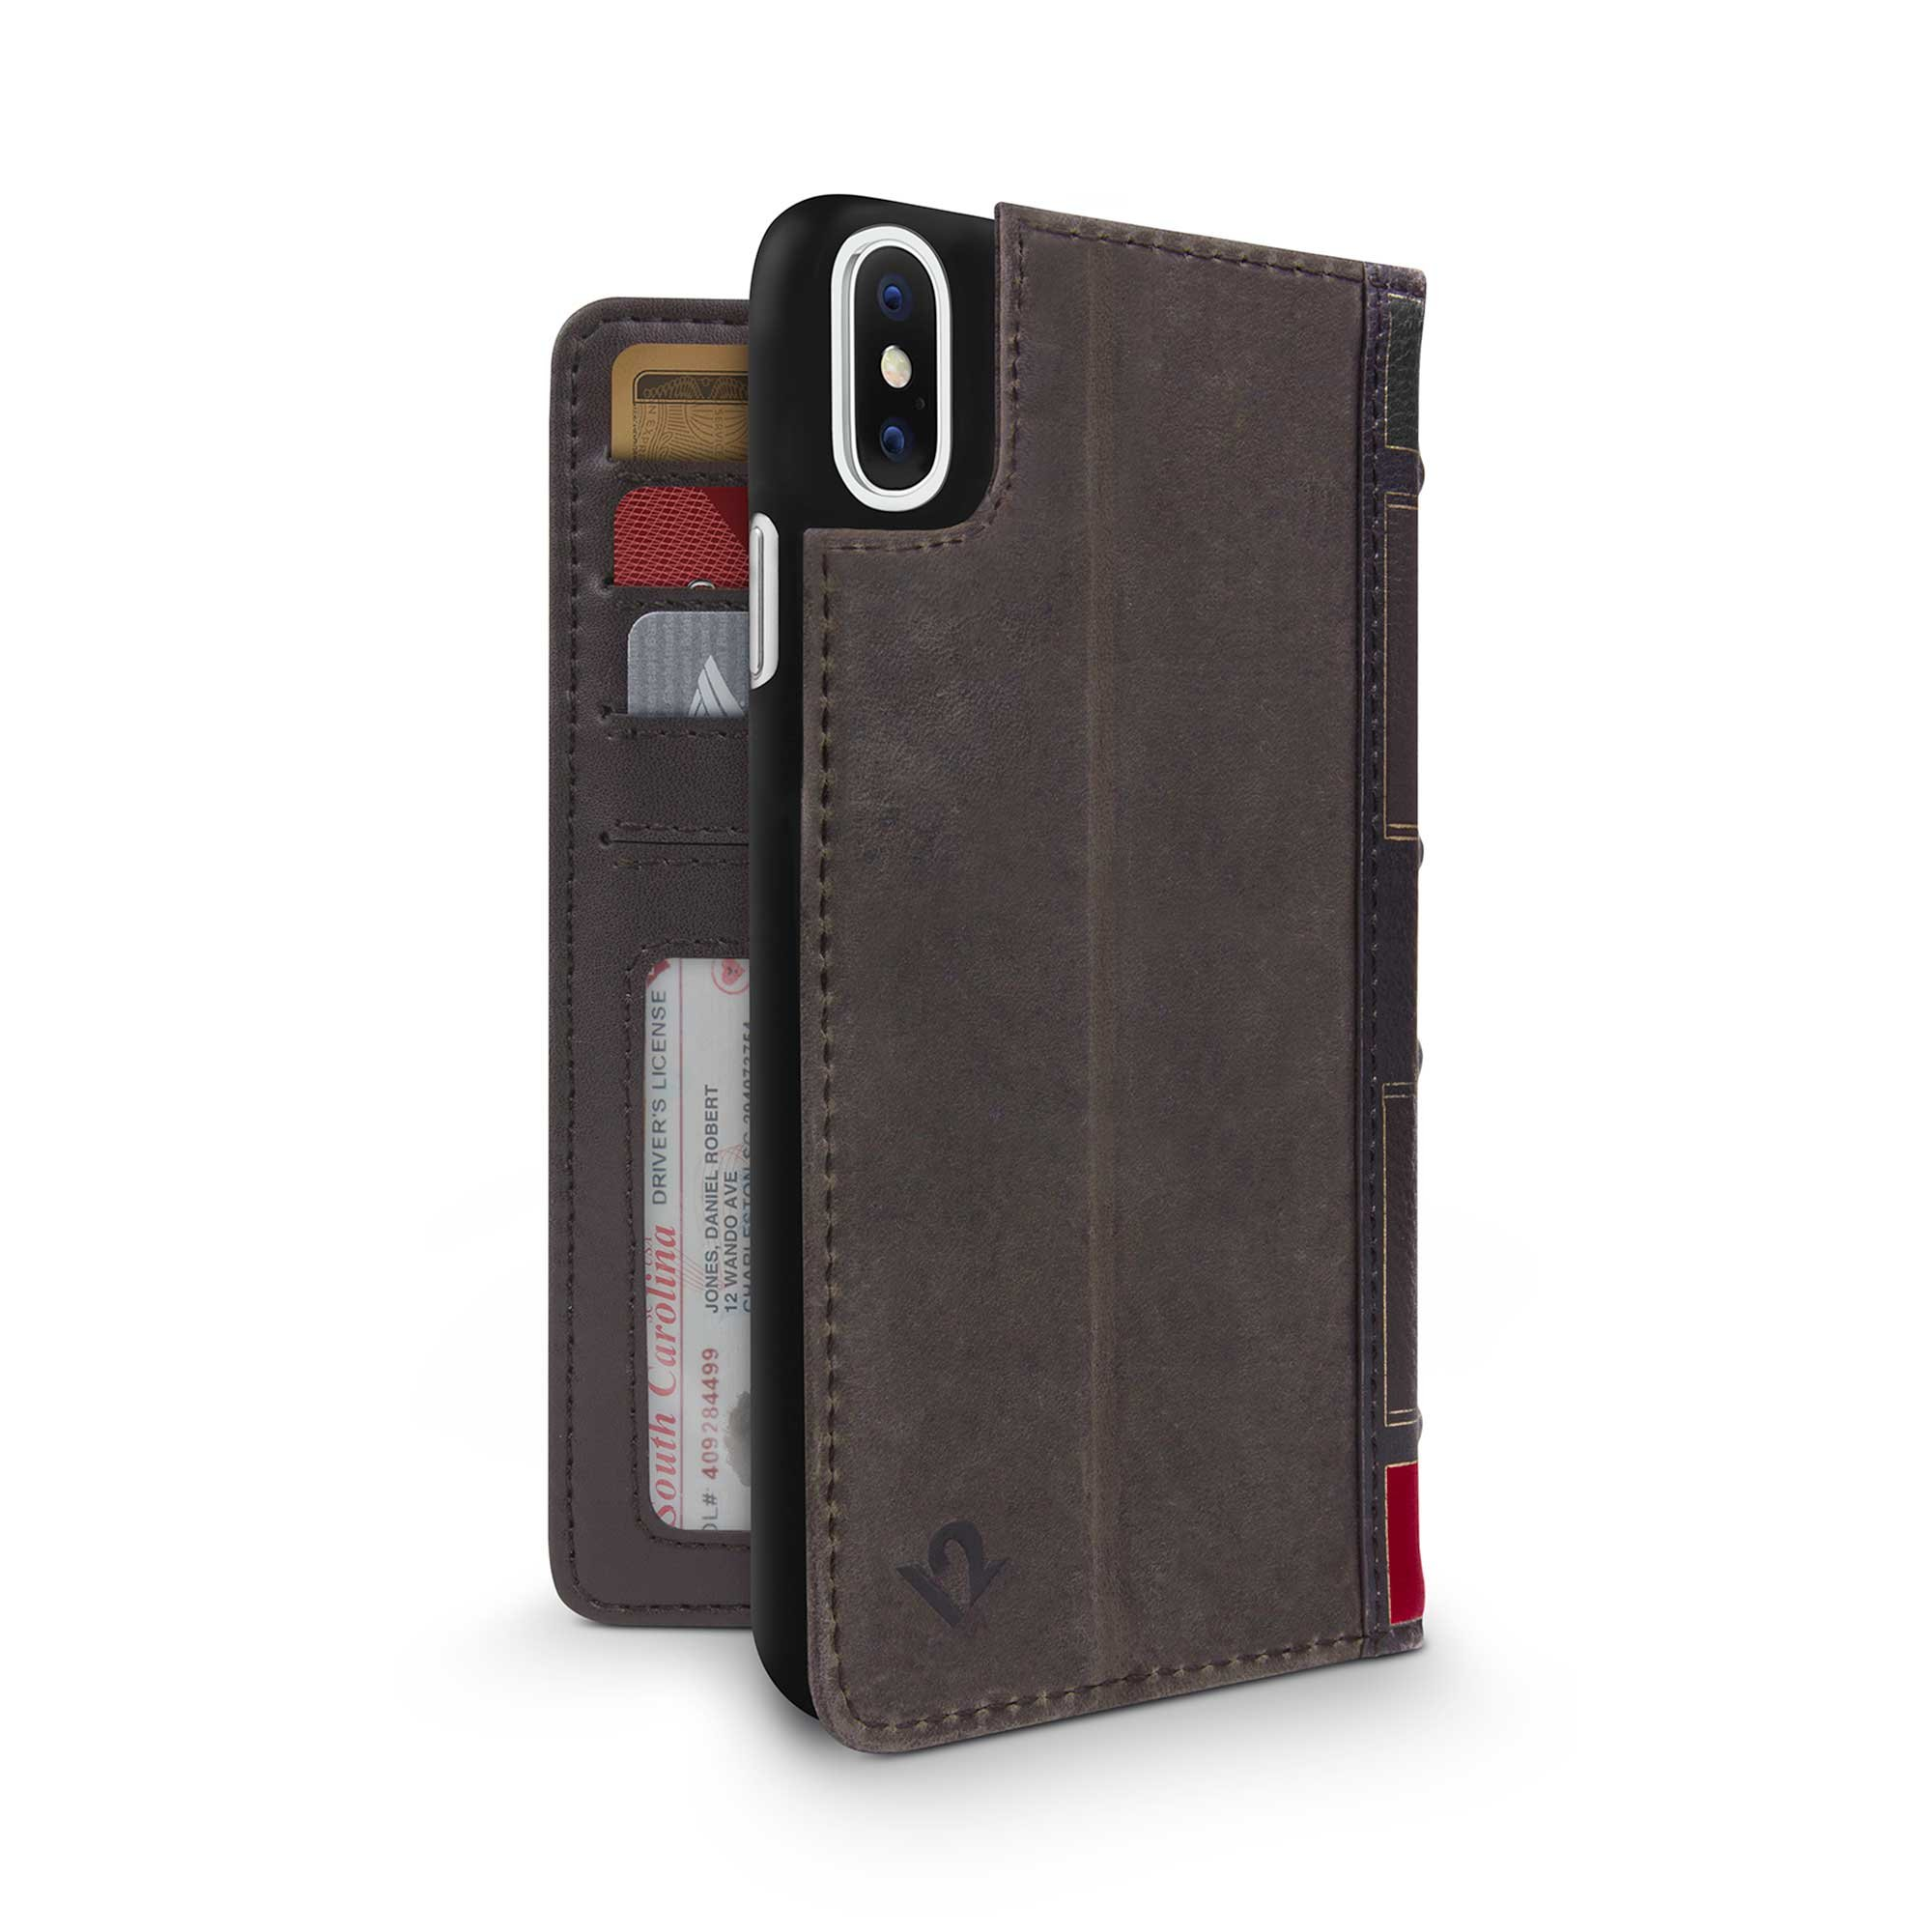 Twelve South BookBook for iPhone XS / iPhone X | 3-in-1 Leather Wallet Case, Display Stand and Removable Shell (Brown) by Twelve South